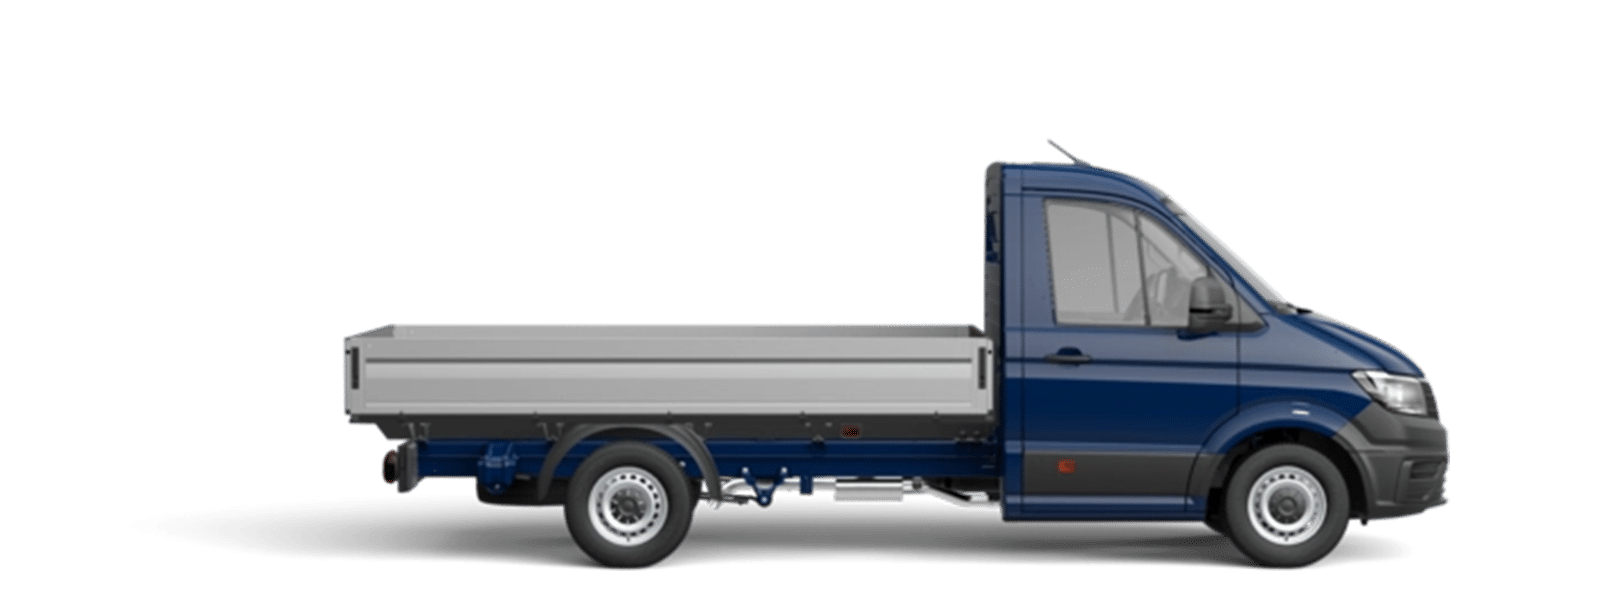 Crafter Camioncino Napoli